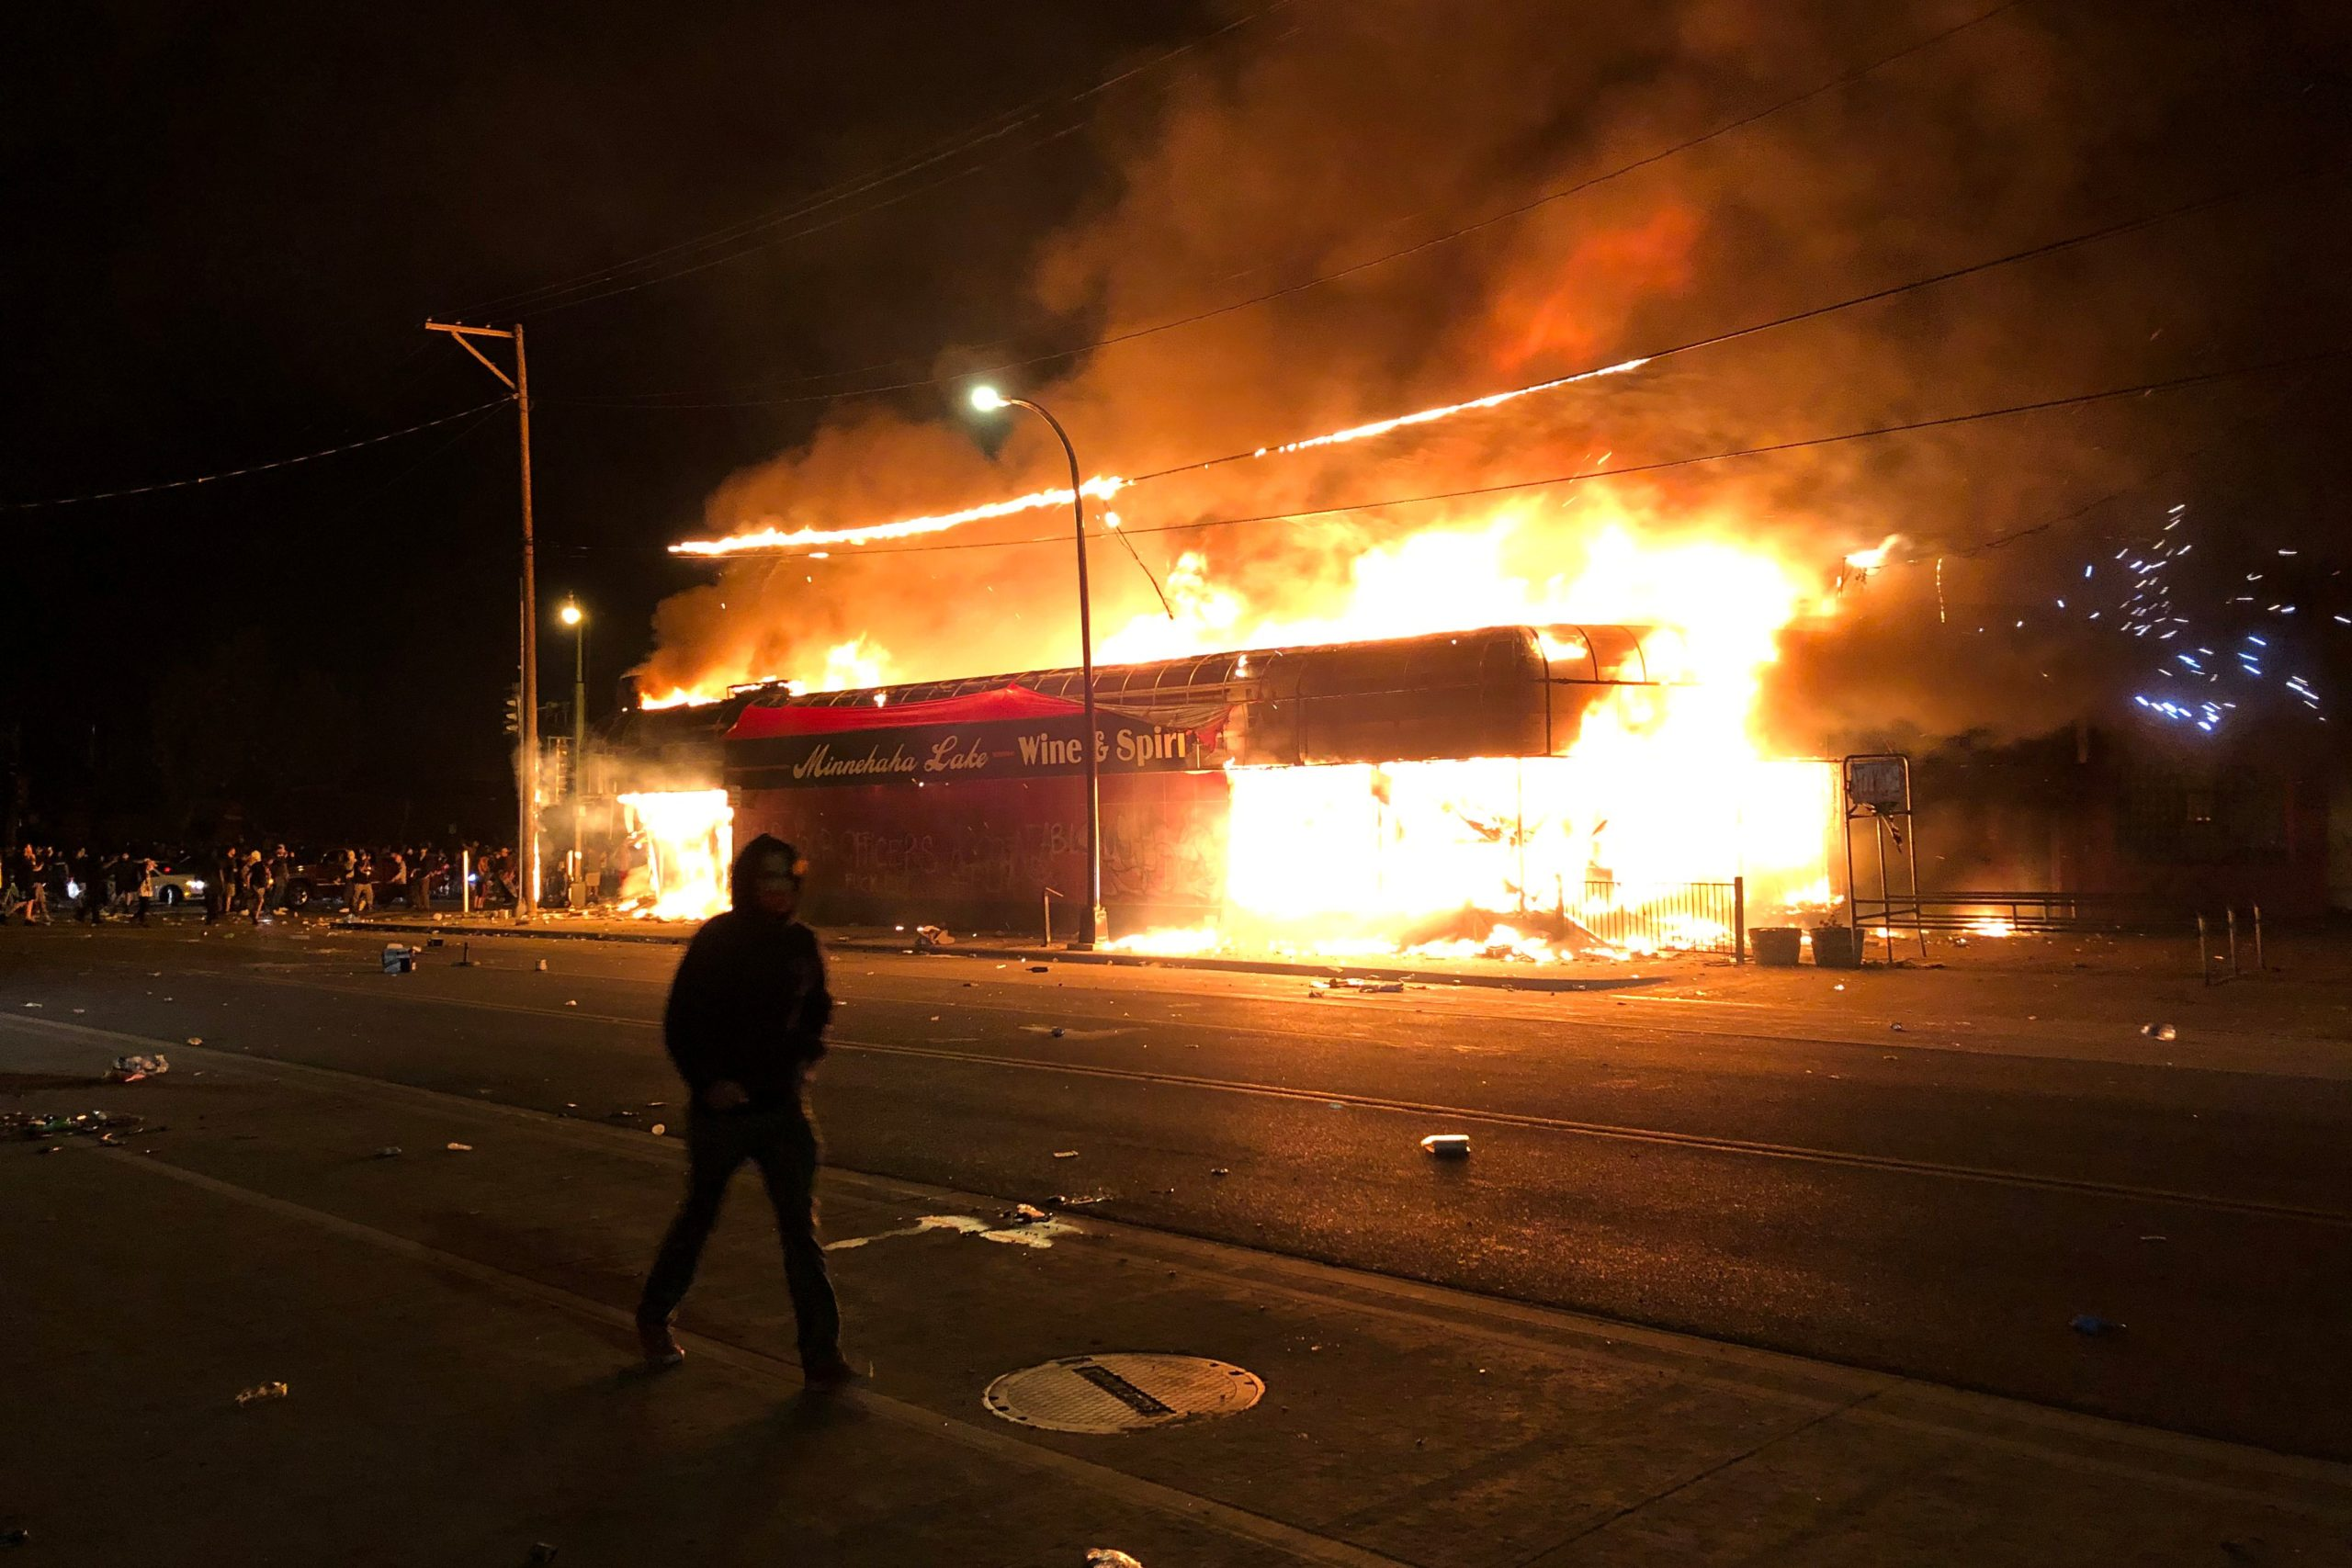 Flames rise from a liquor store near the Third Police Precinct on May 28, 2020 in Minneapolis, Minnesota, during a protest over the death of George Floyd, an unarmed black man, who died after a police officer kneeled on his neck for several minutes. - A police precinct in Minnesota went up in flames late on May 28 in a third day of demonstrations as the so-called Twin Cities of Minneapolis and St. Paul seethed over the shocking police killing of a handcuffed black man. The precinct, which police had abandoned, burned after a group of protesters pushed through barriers around the building, breaking windows and chanting slogans. A much larger crowd demonstrated as the building went up in flames. (Photo by Kerem Yucel / AFP) (Photo by KEREM YUCEL/AFP via Getty Images)